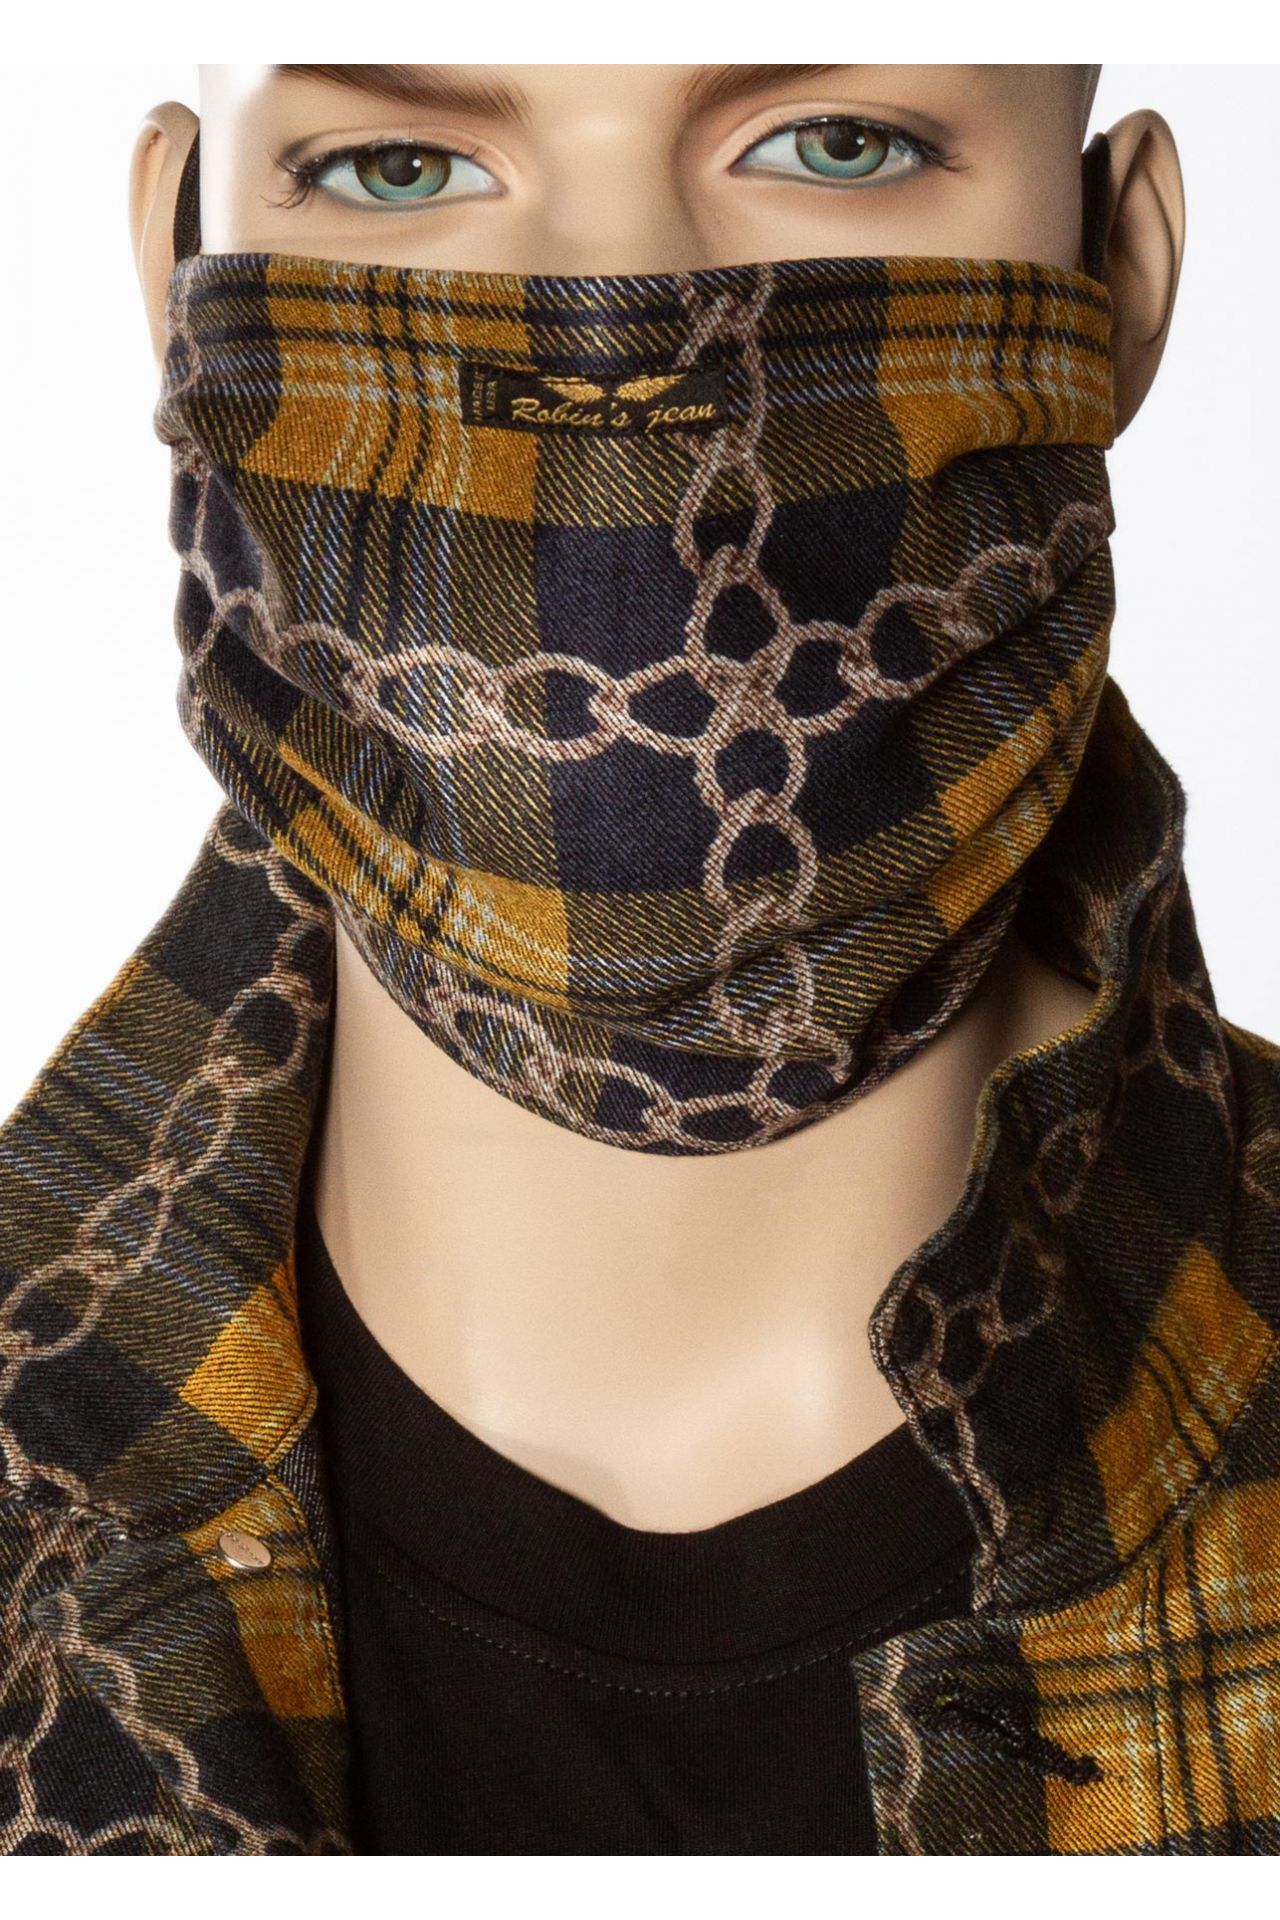 ELEMENTS MASK IN YELLOW PLAID